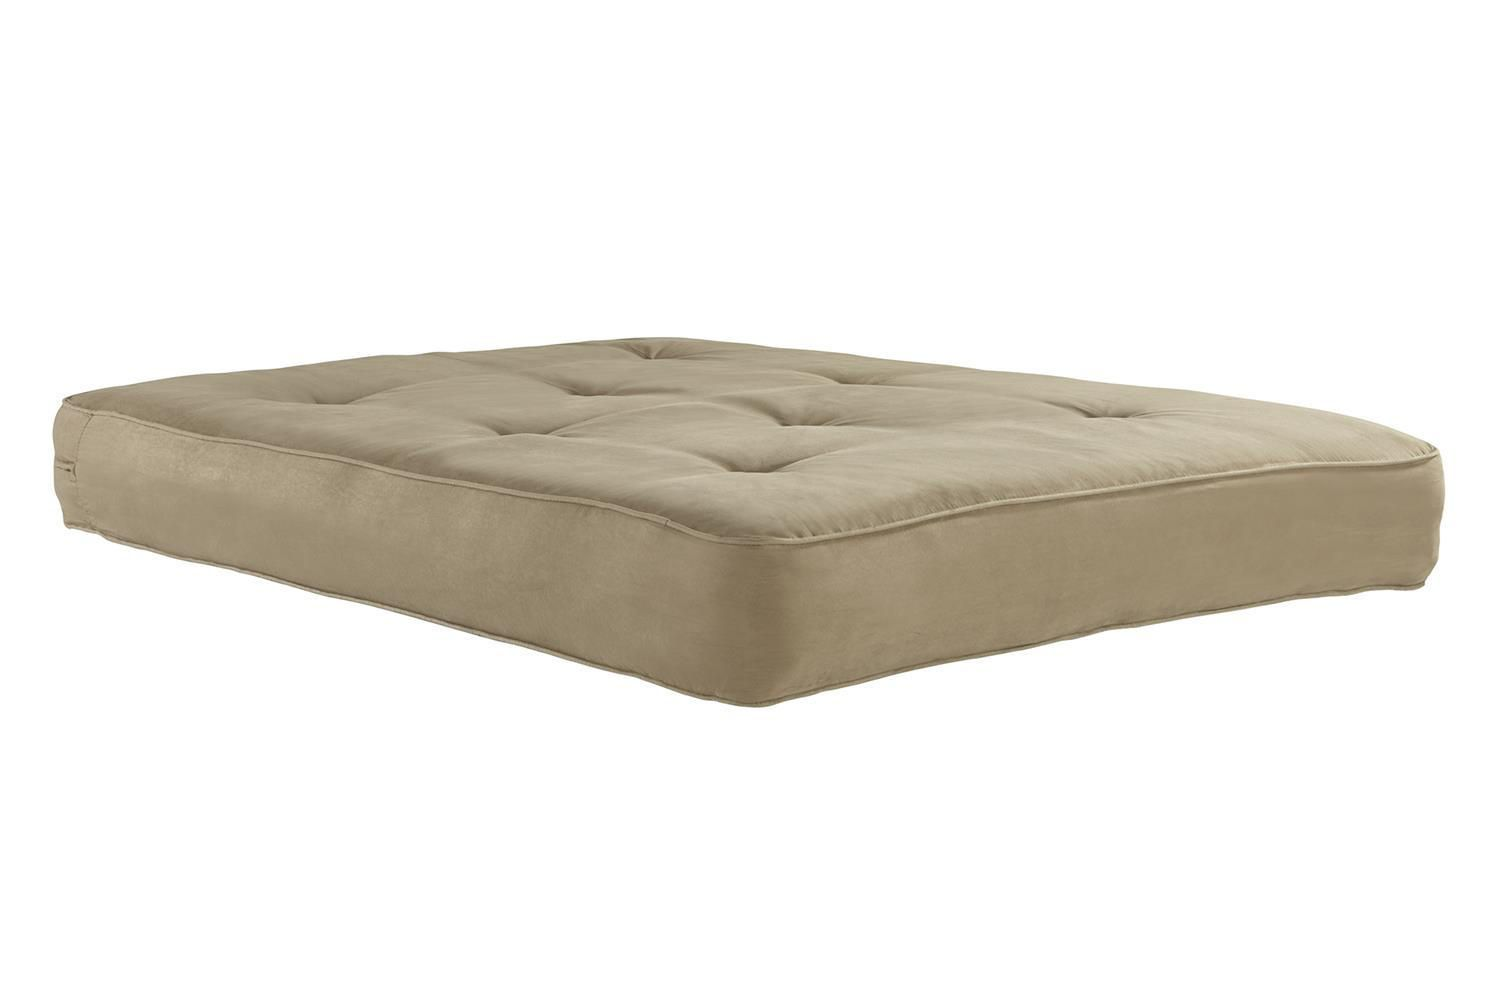 parts spare matratze in categories by connox white karup shop with replacement cover mattress comfortable futon futons